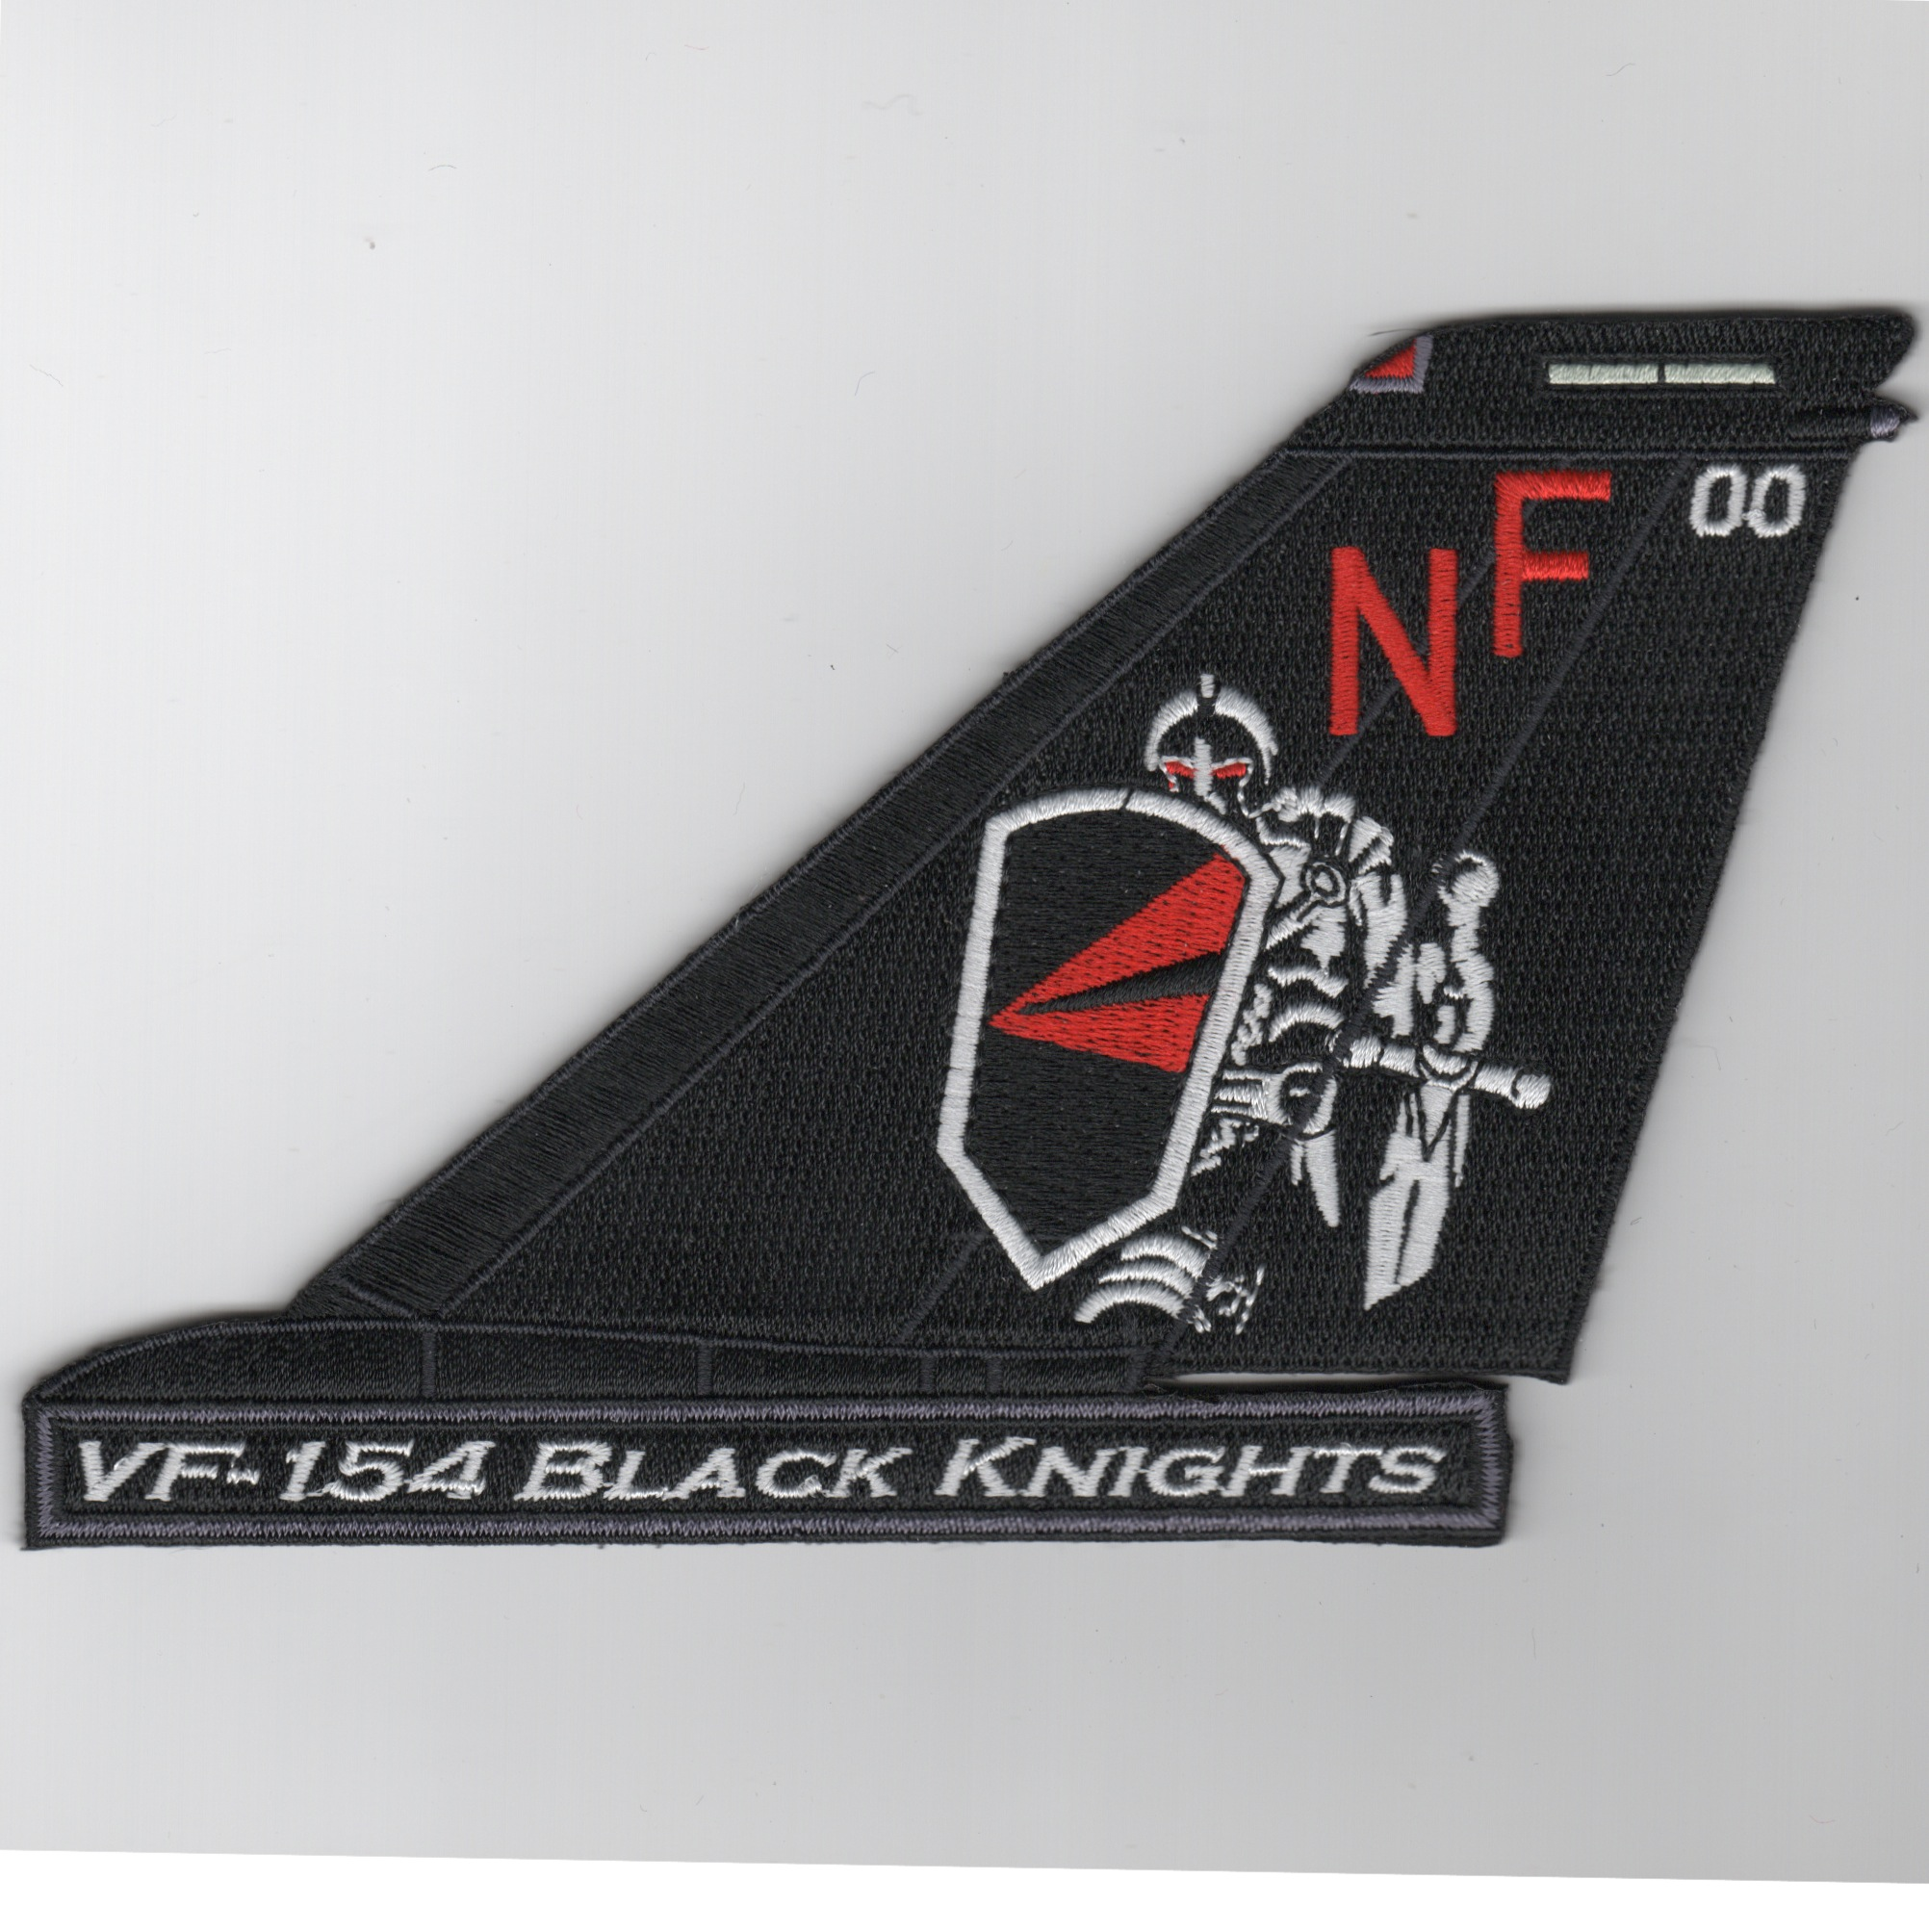 VF-154 F-14 Tailfin (Black/NF/Text)